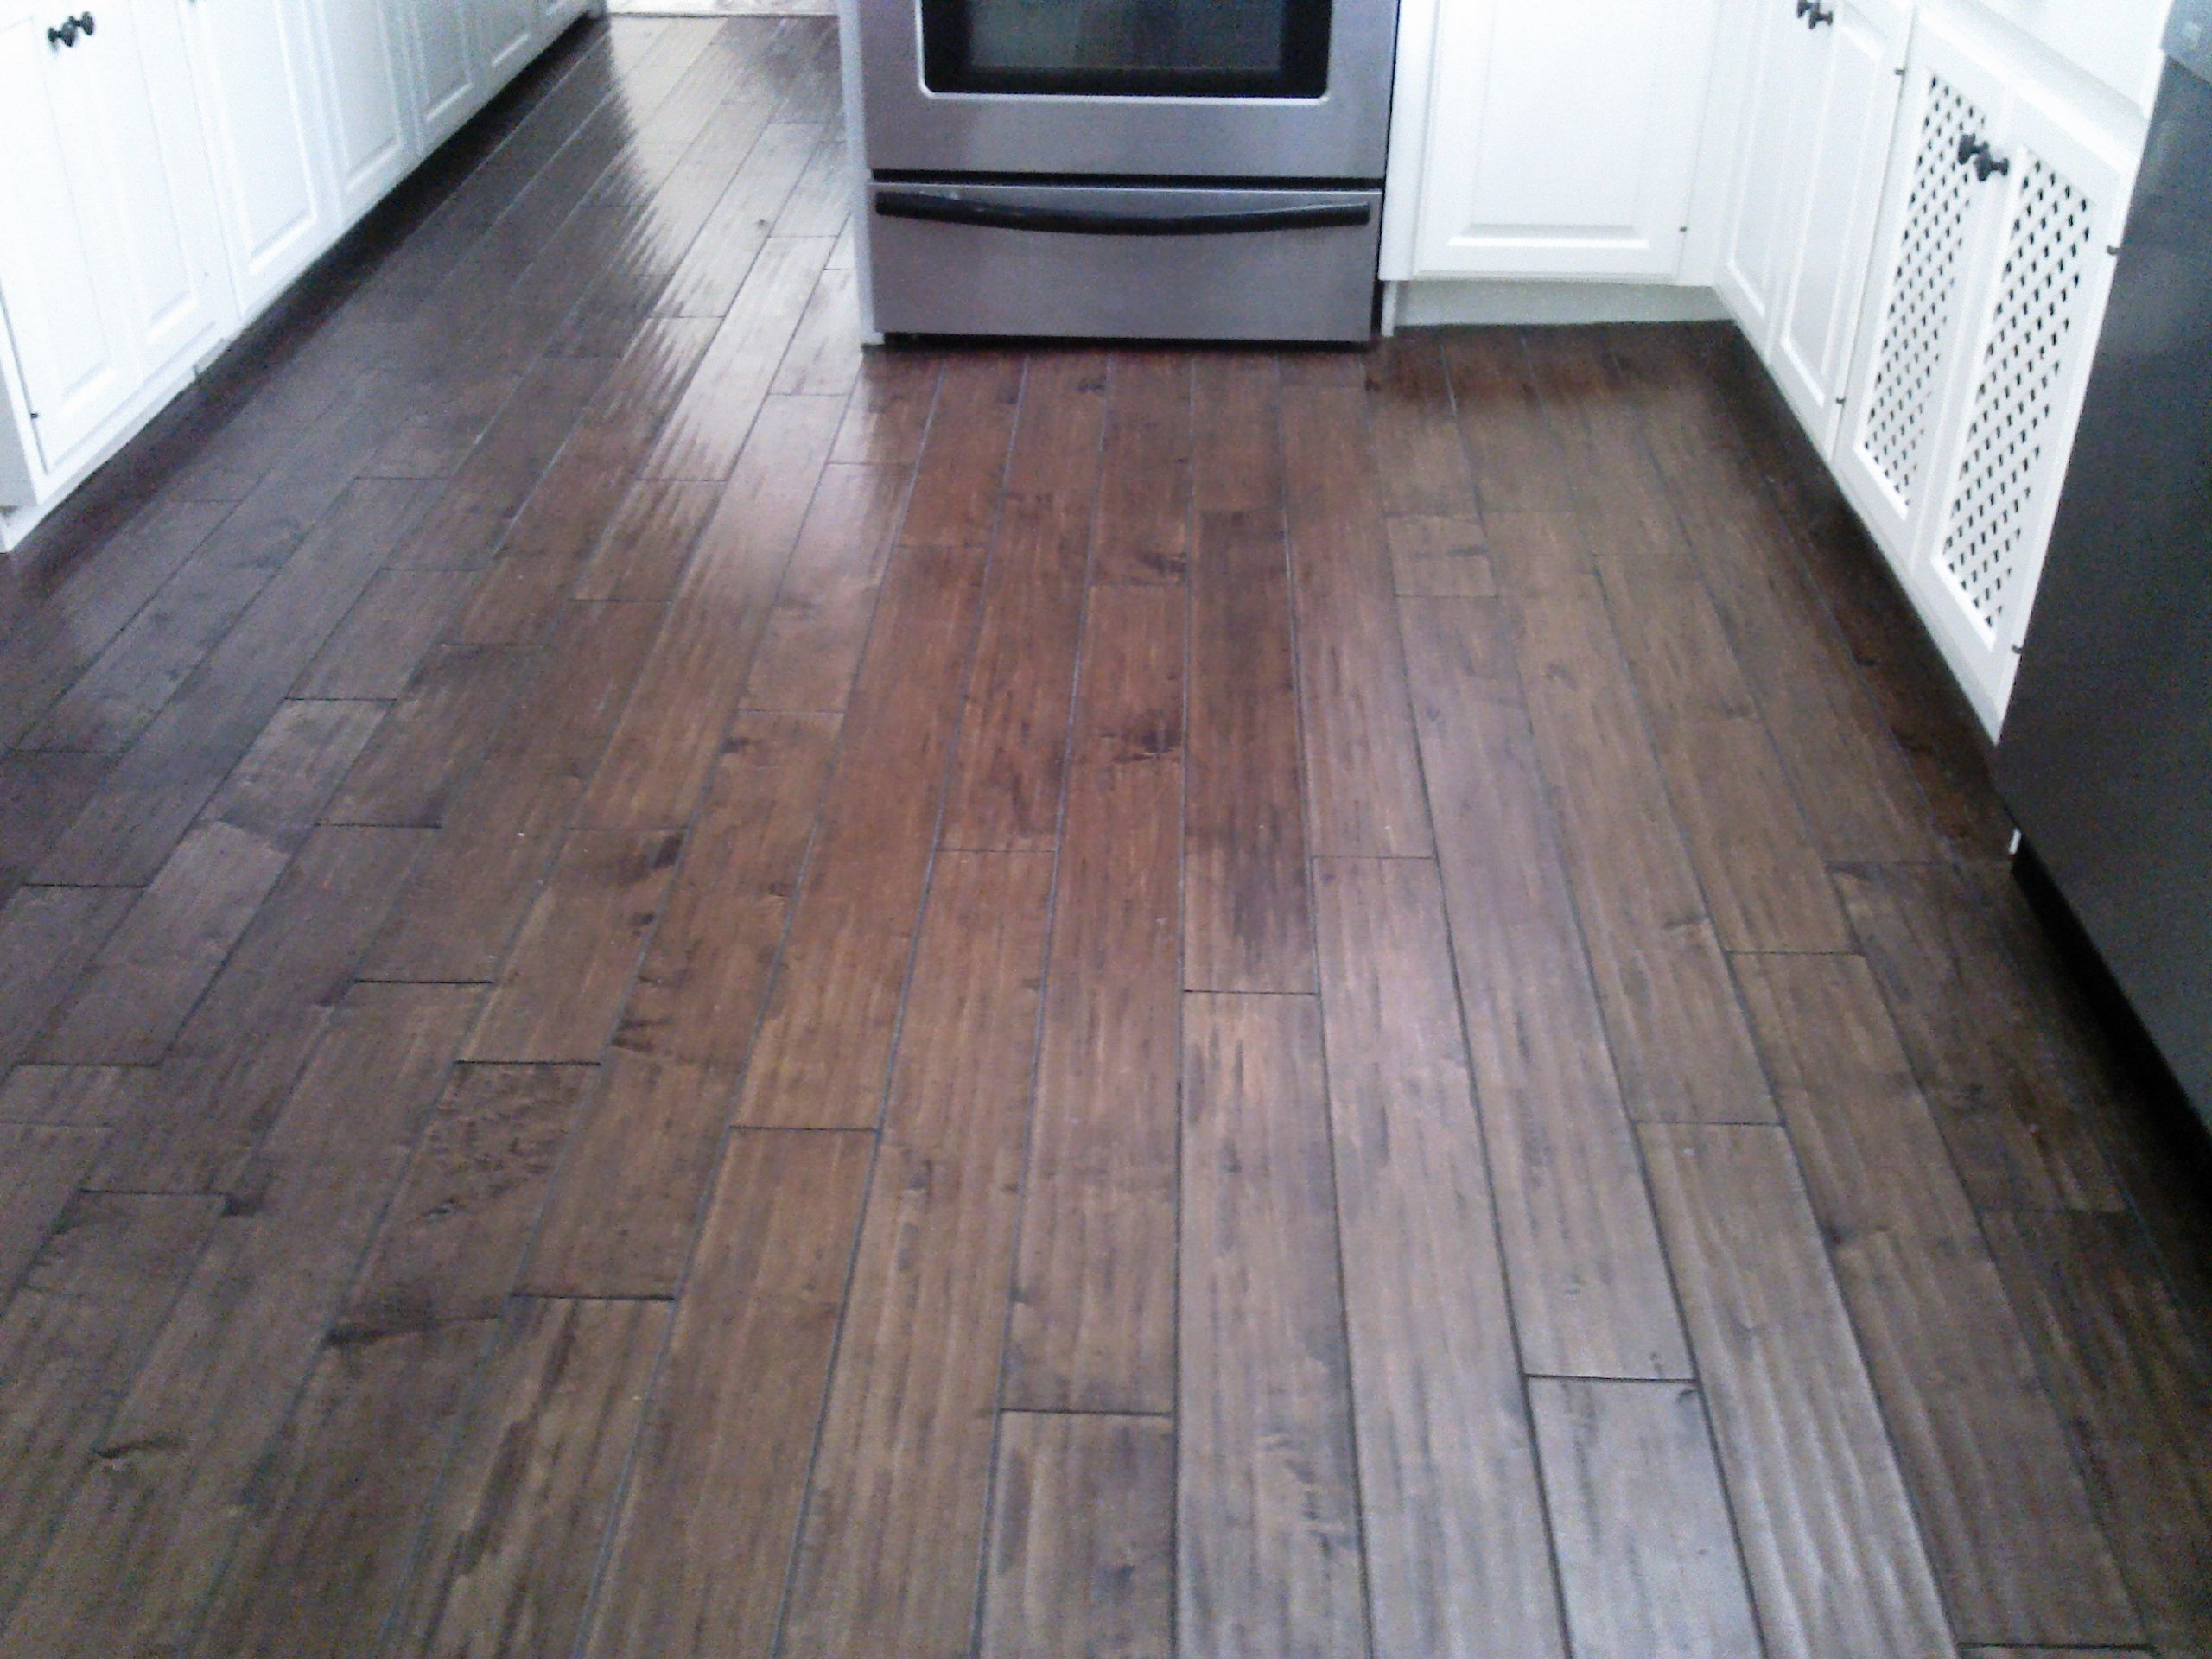 Laminate Wood Flooring in Kitchen Ratings Reviews laminate flooring kitchen